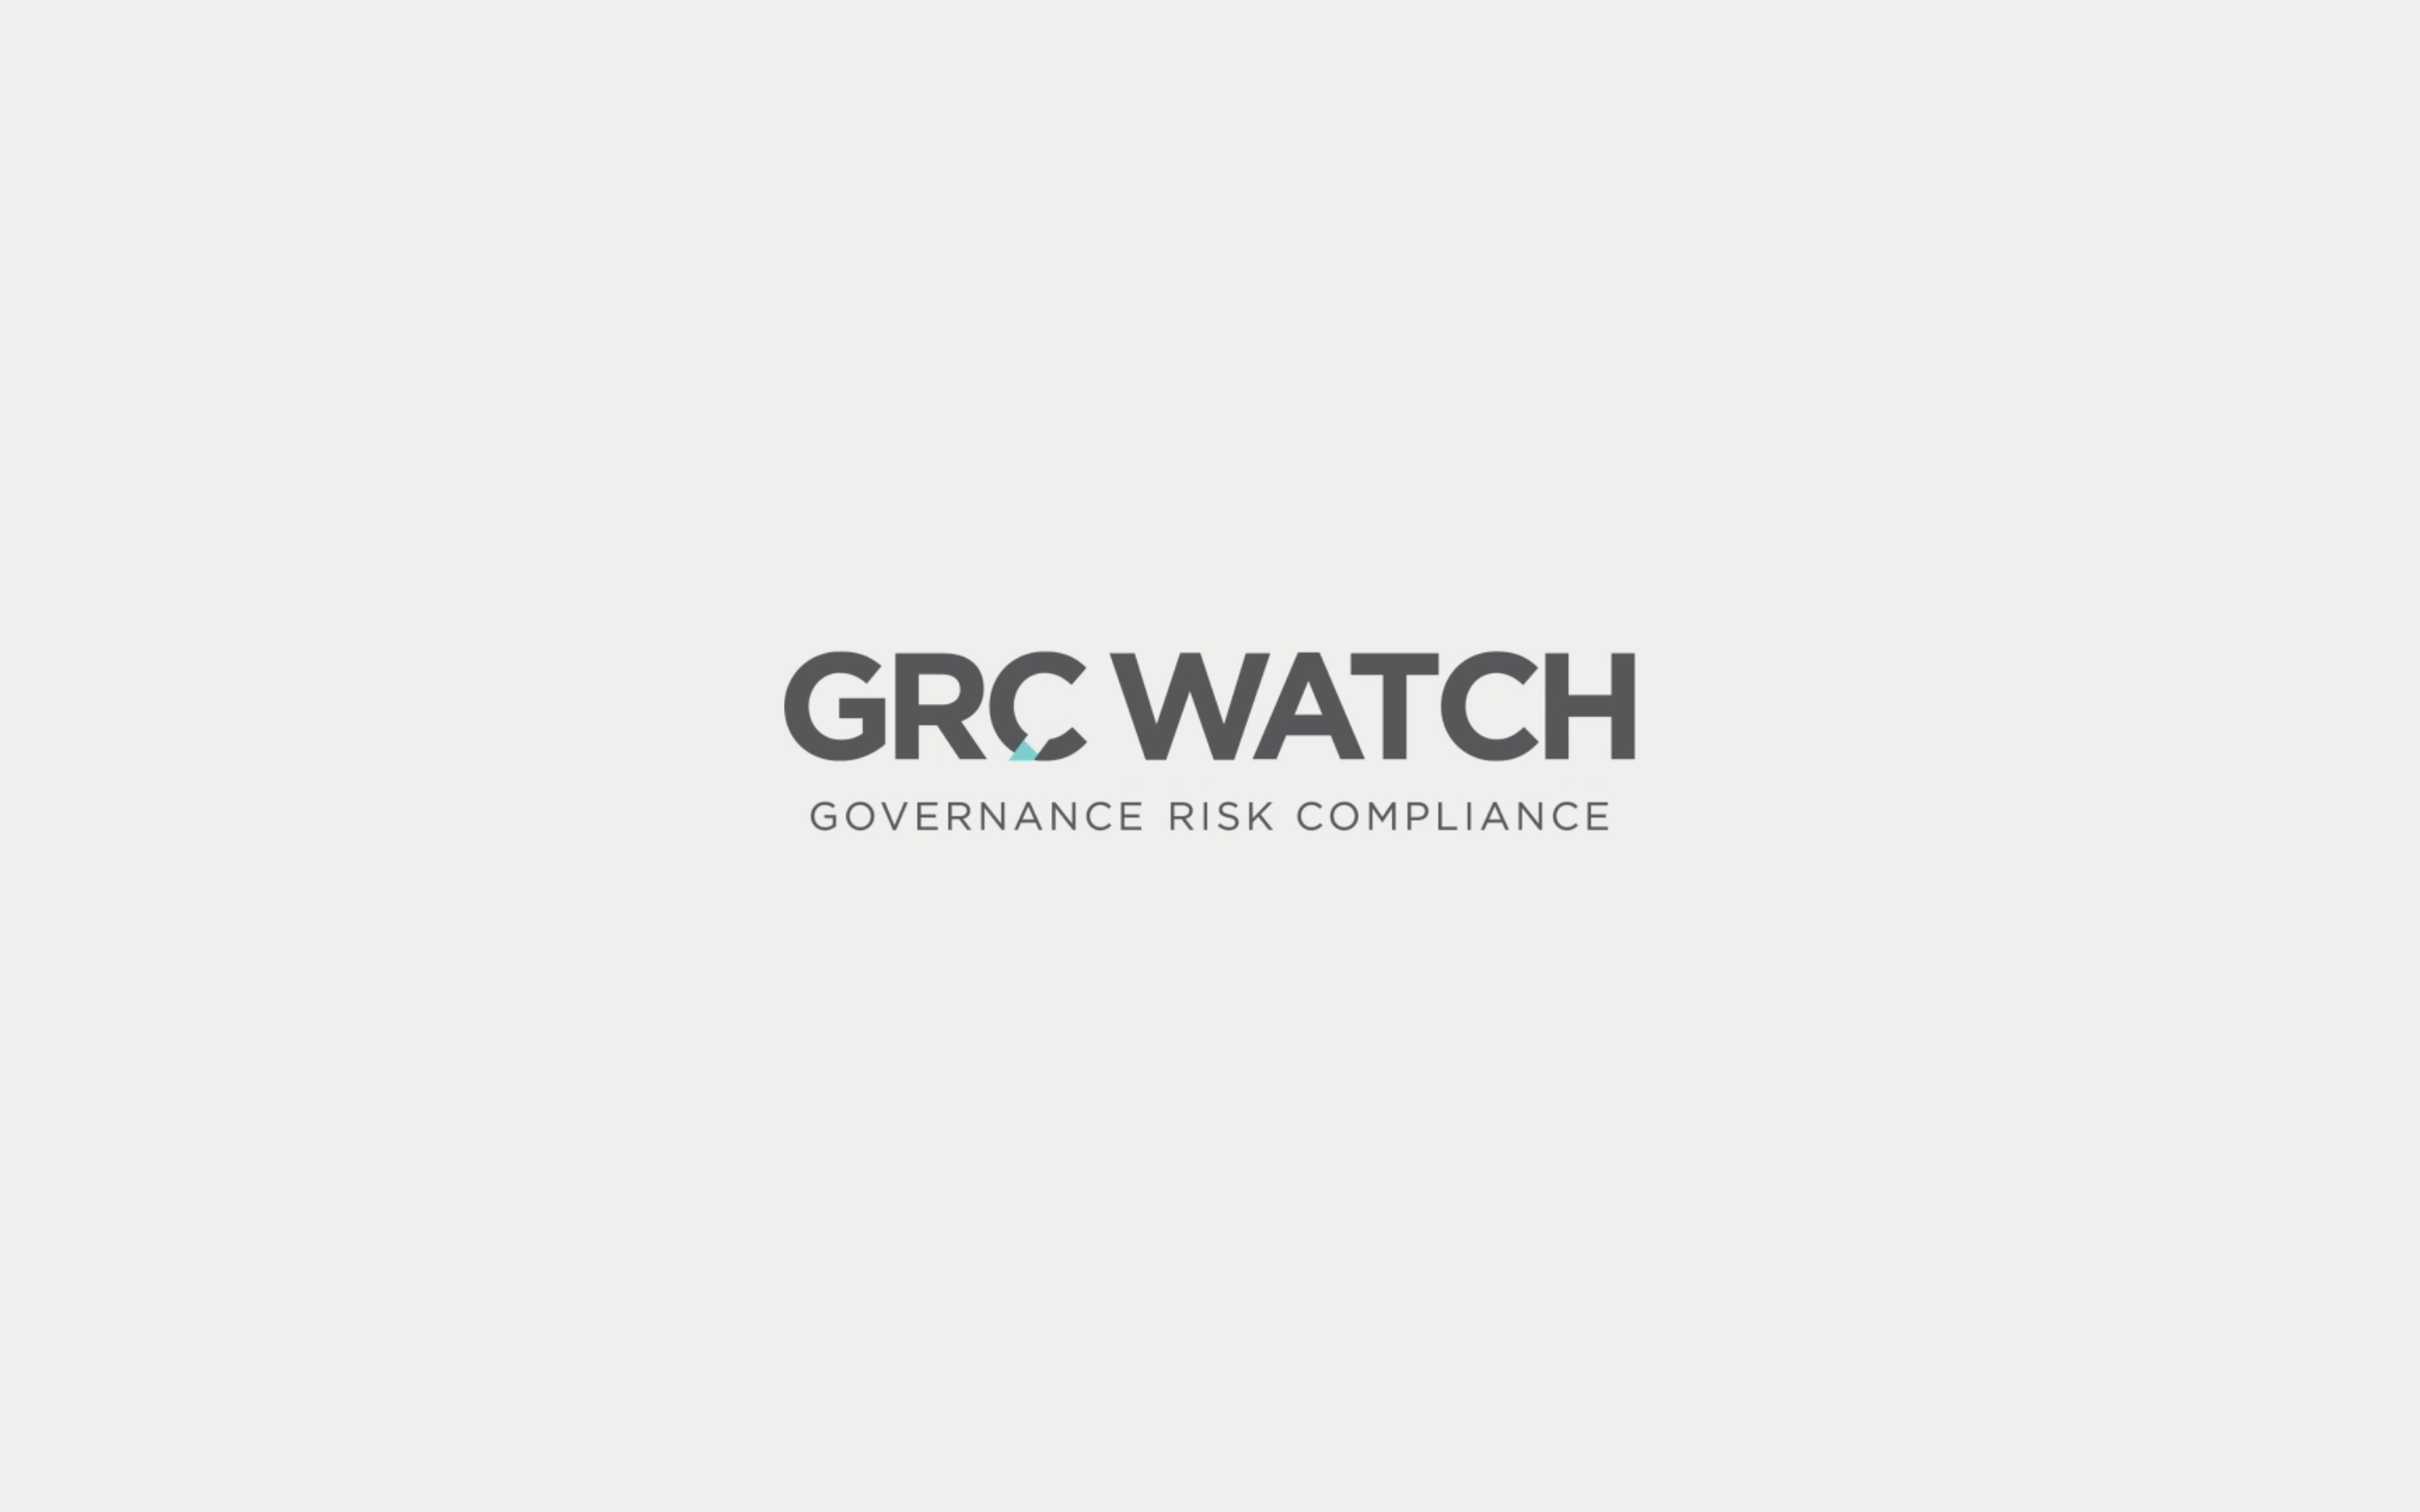 GRC Watch Explainer Video by Storisell 12